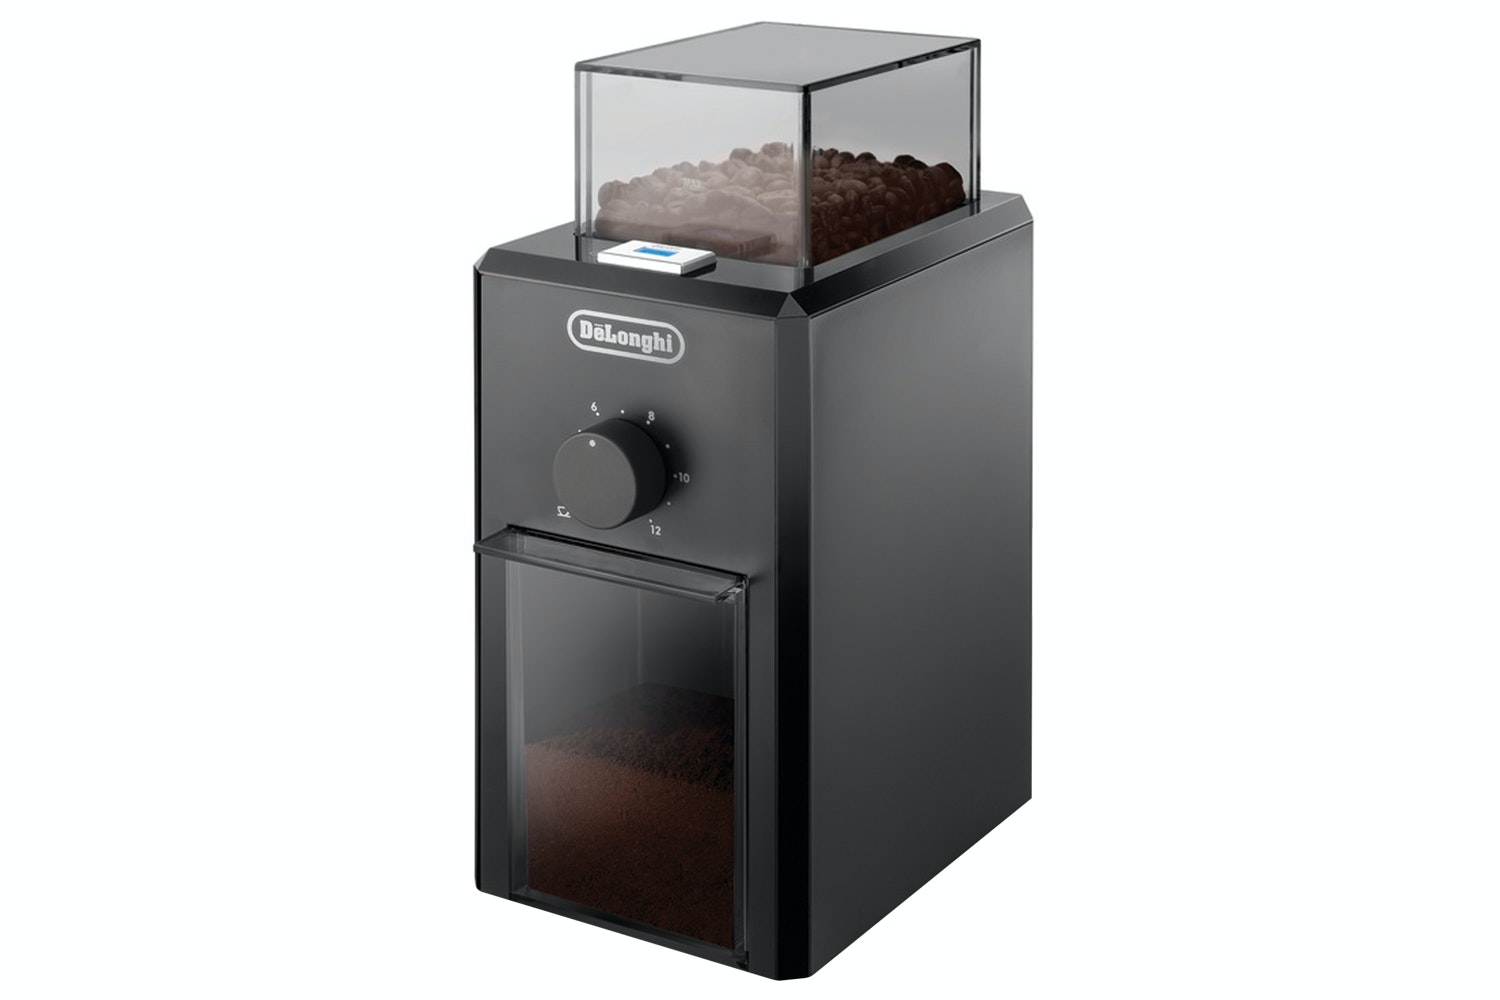 Delonghi Coffee Grinder | KG79